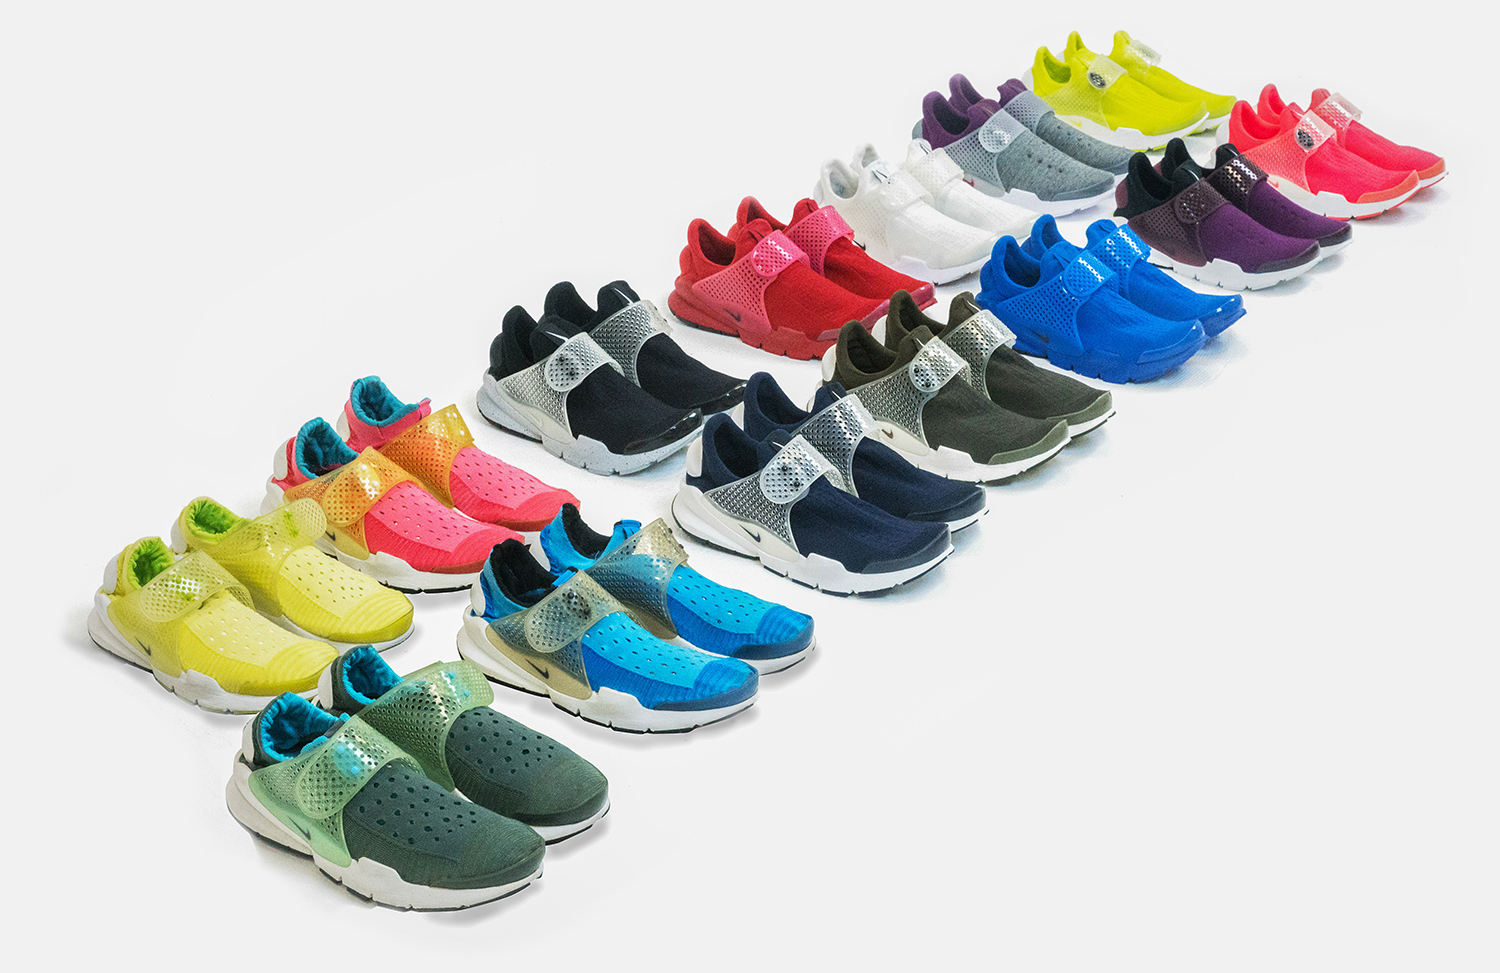 86b2691ac37f The Story Behind the Nike Sock Dart - size  blog